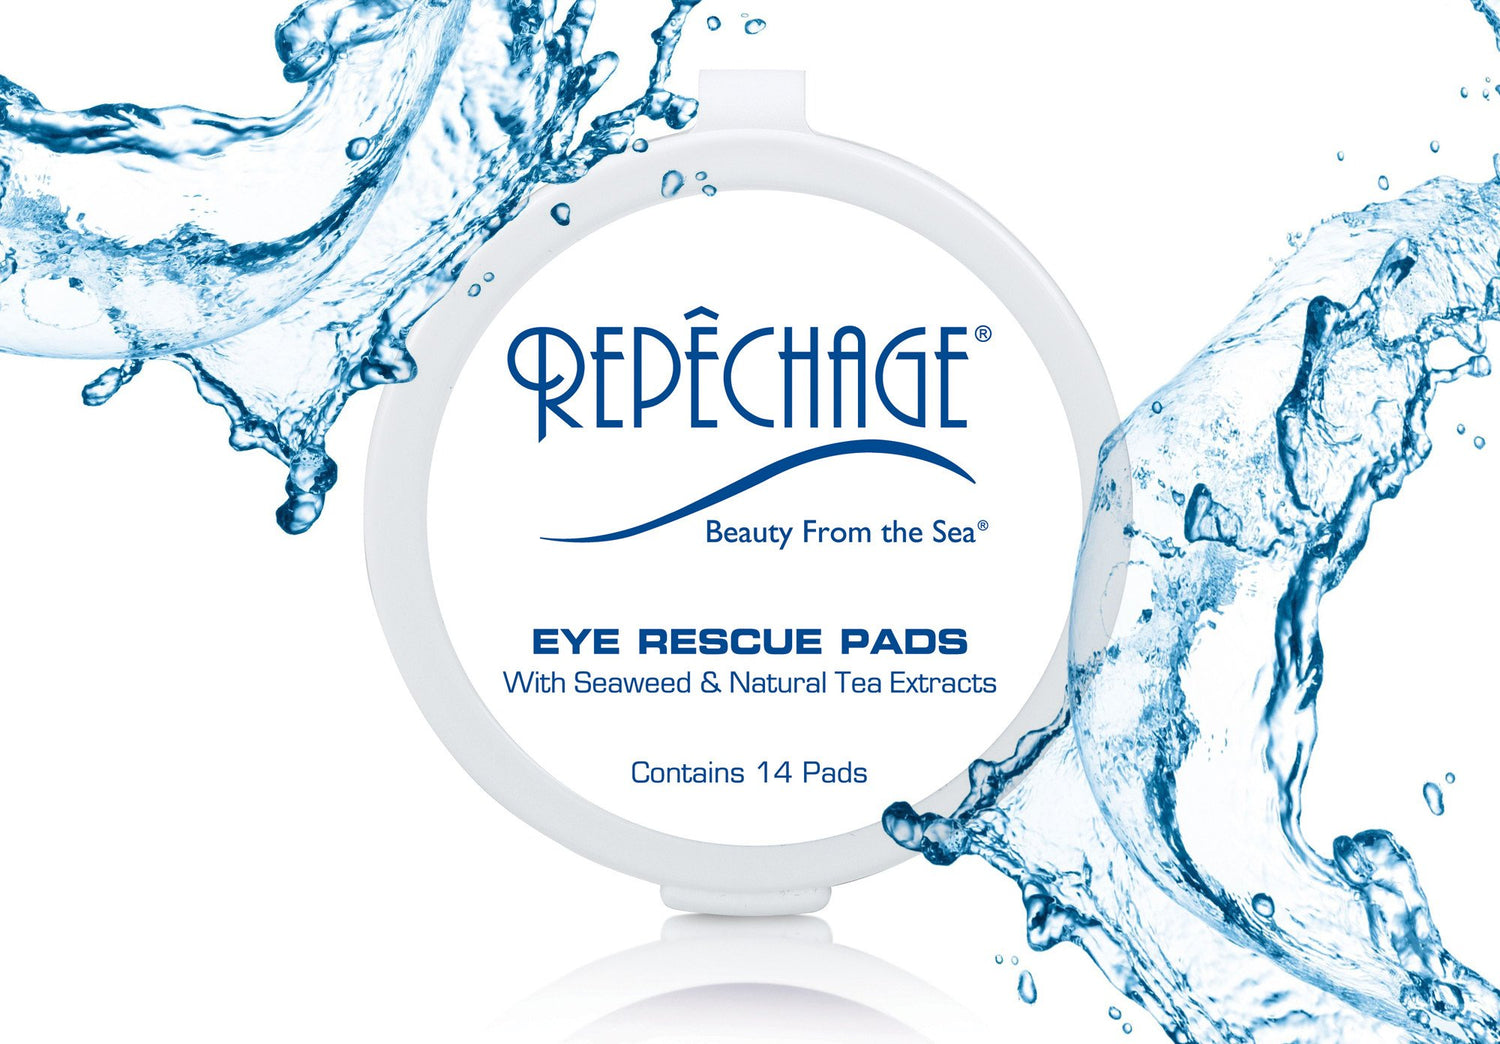 Eye Rescue Pads with Seaweed and Natural Tea Extracts (Travel Size)